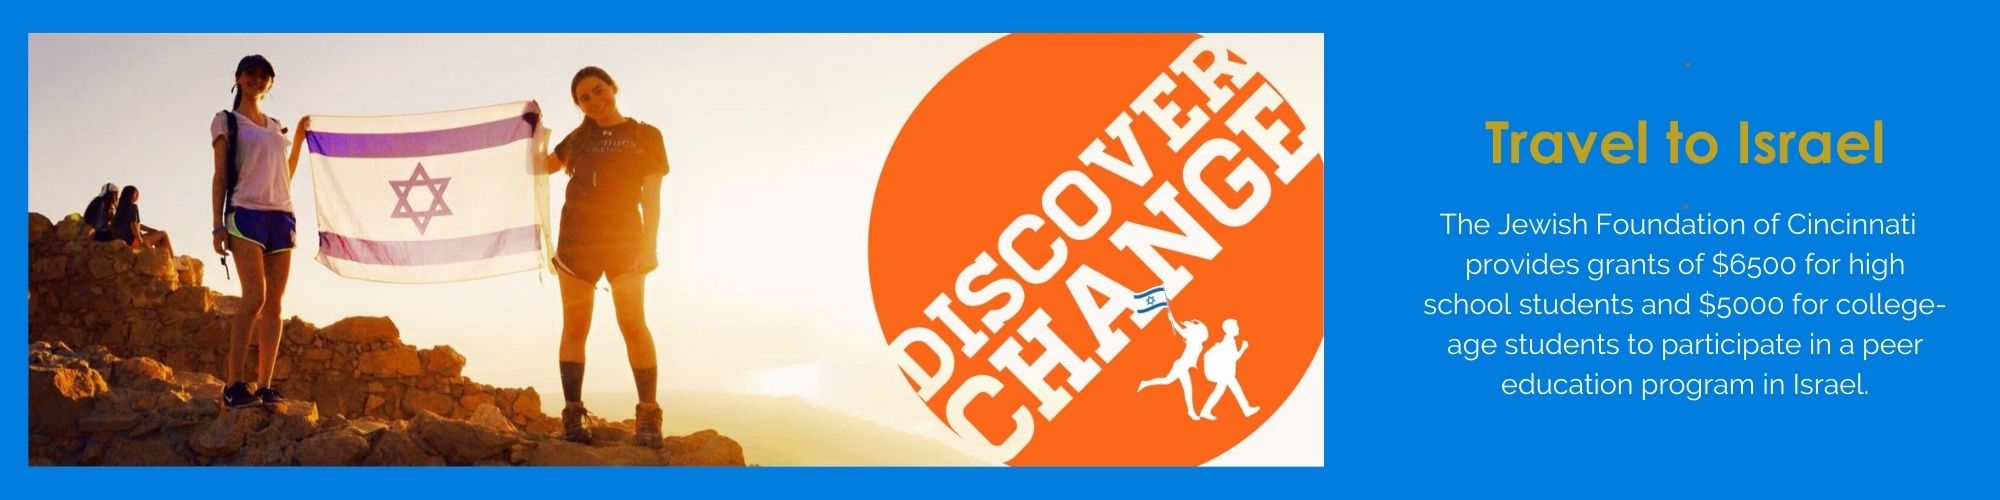 """<a href=""""https://cincyjourneys.org/israel/high-school""""                                     target="""""""">                                                                 <span class=""""slider_title"""">                                     CINCY JOURNEYS GRANTS                                </span>                                                                 </a>                                                                                                                                                                                       <span class=""""slider_description"""">Don't miss your chance to be the one saying """"you had to be there"""" instead of the one hearing it. With options from traveling with your youth movement, to March of the Living, to high school study abroad programs, we can help you find a trip you'll never stop talking about.</span>                                                                                     <a href=""""https://cincyjourneys.org/israel/high-school"""" class=""""slider_link""""                             target="""""""">                             Learn more.                            </a>"""